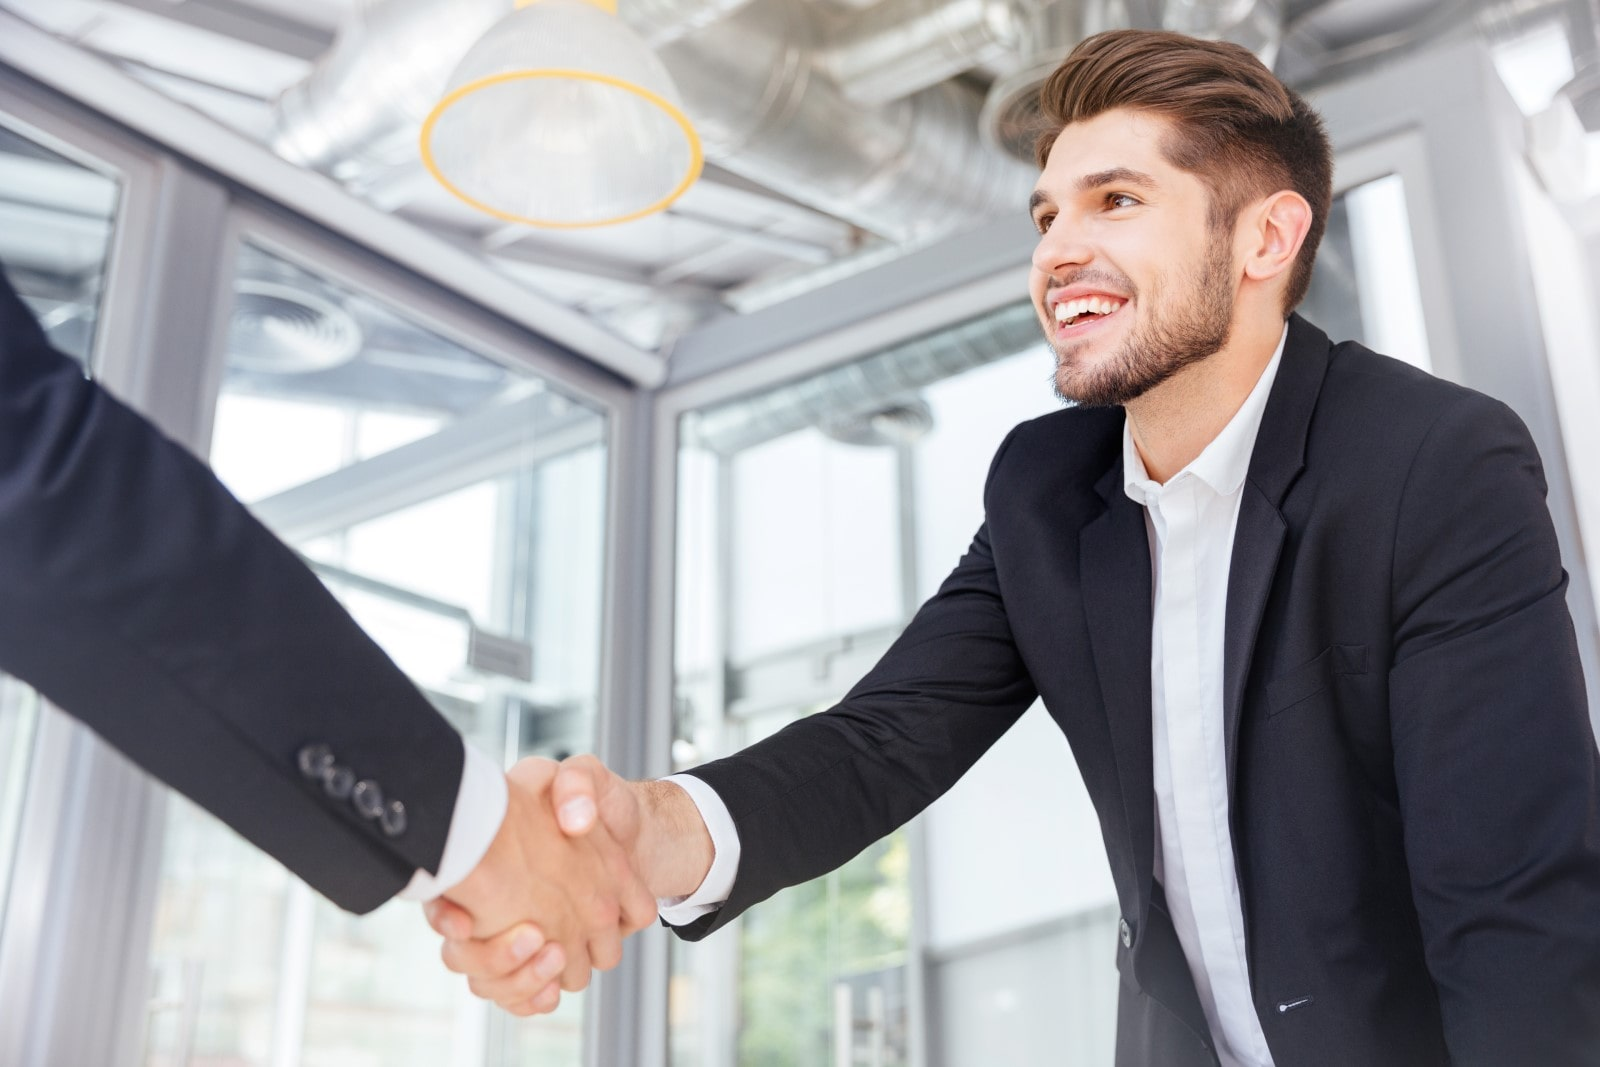 Two guys shaking hands after a job interview